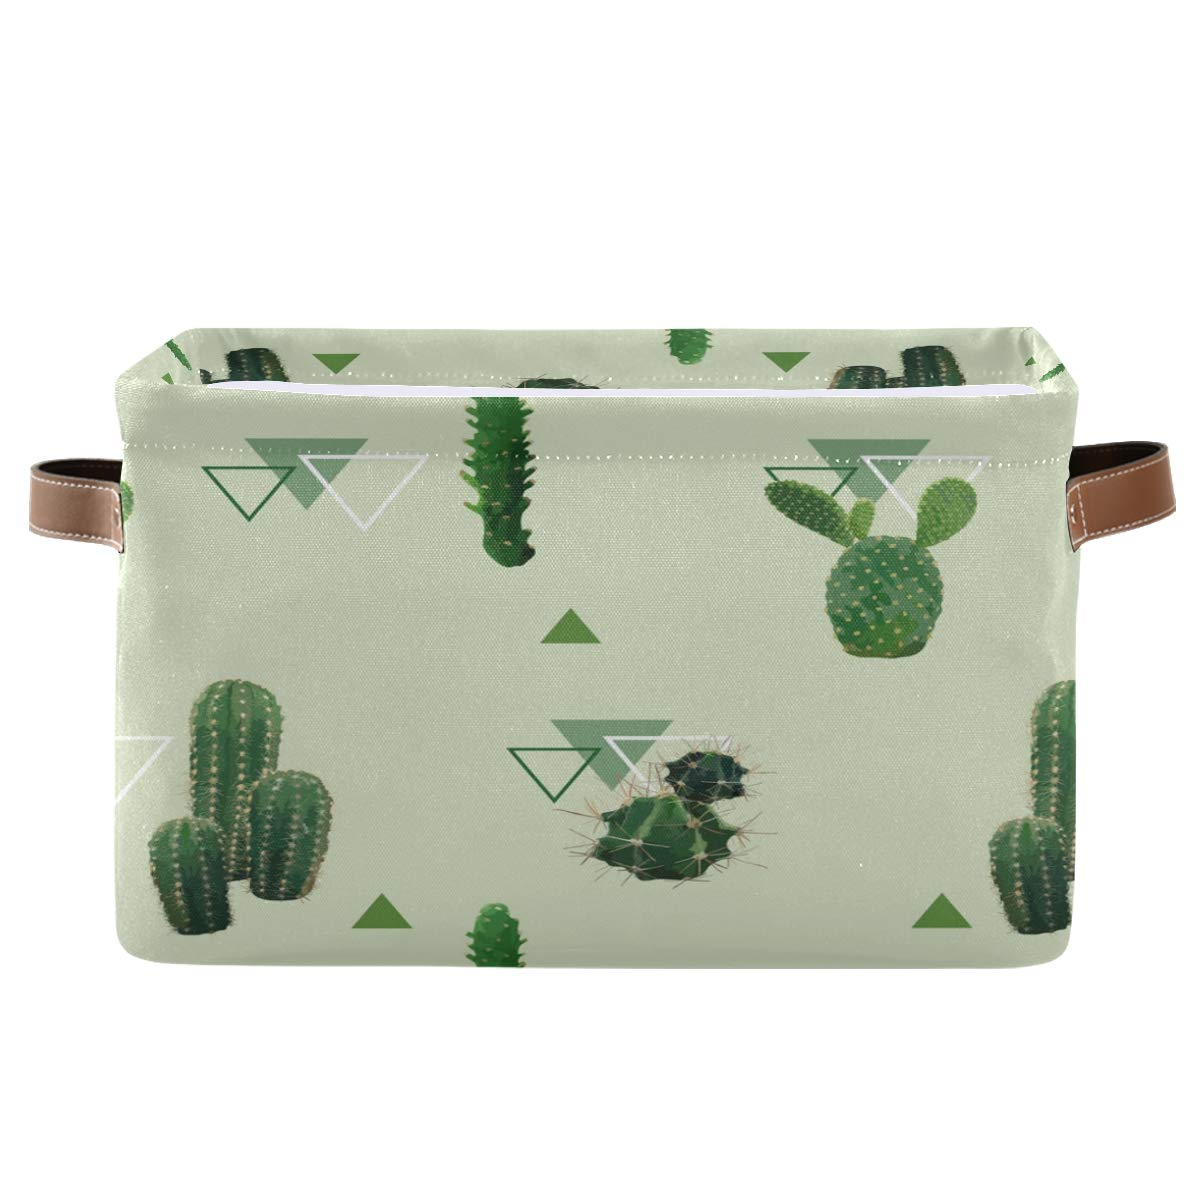 FORMEETY Tropical Cactus Geometric Storage Canvas Kids Bin Women Animer and price revision Ranking TOP9